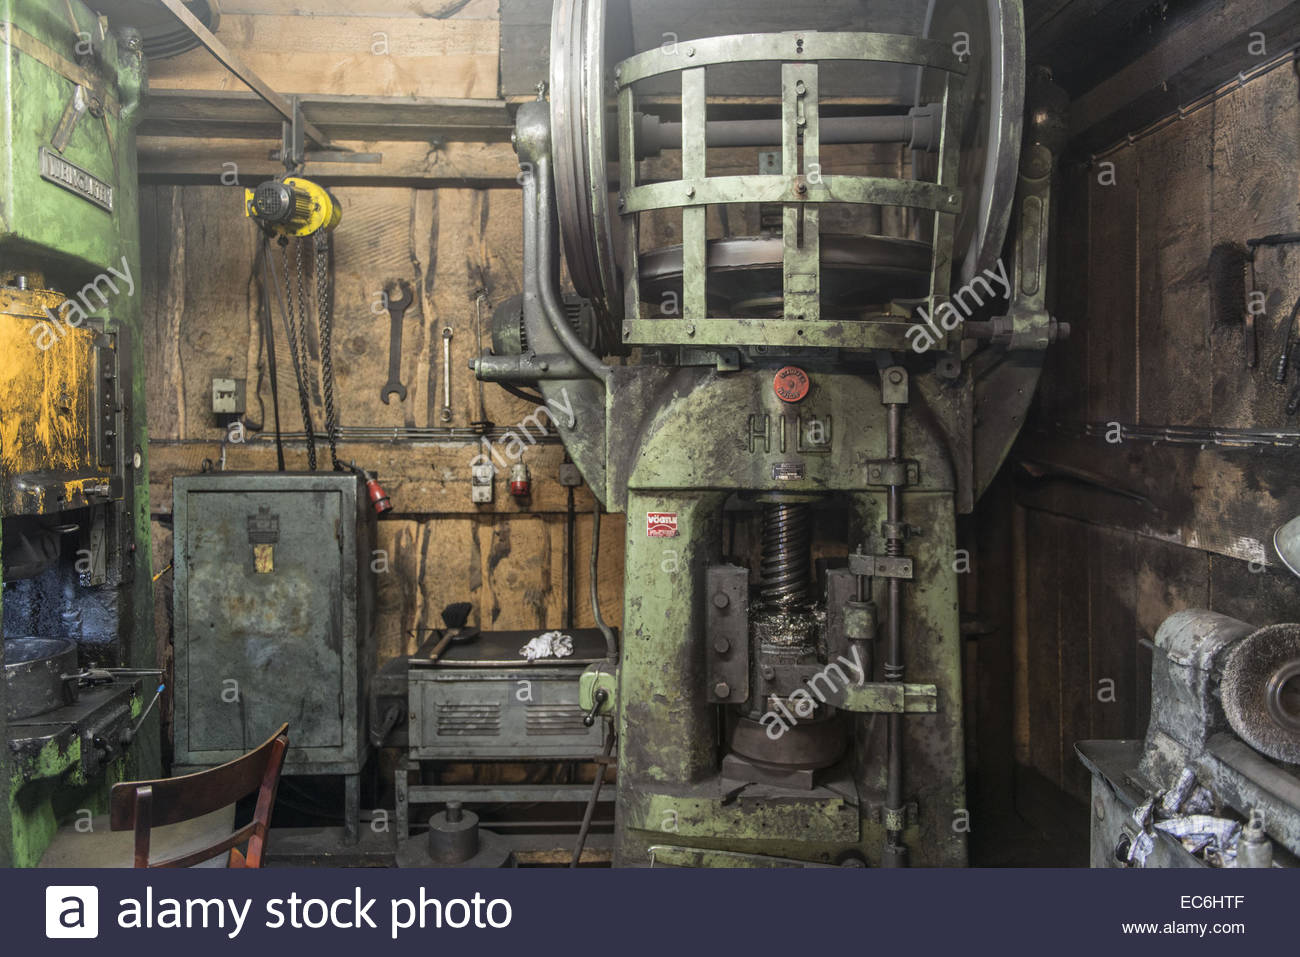 Compression Tool in a Forge - Stock Image